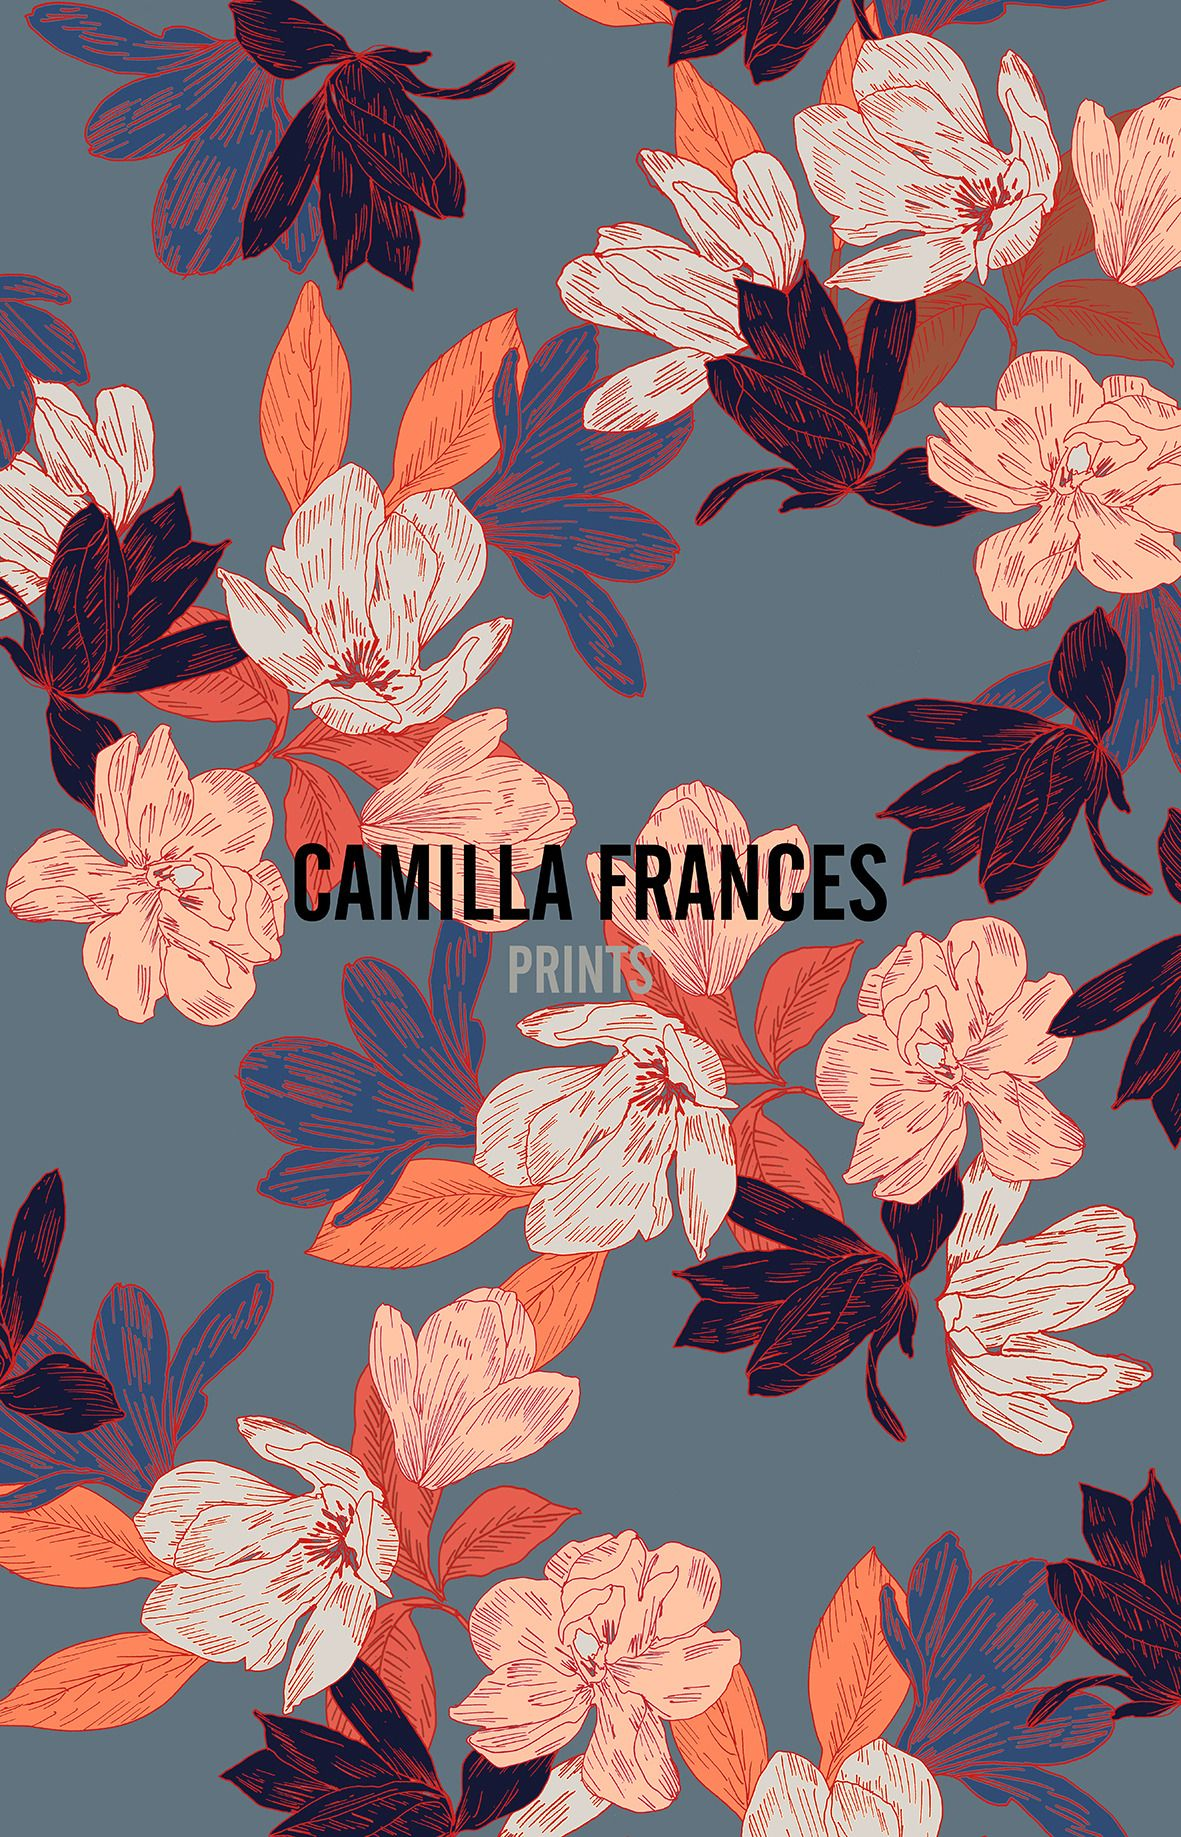 Camilla Frances Prints: Photo